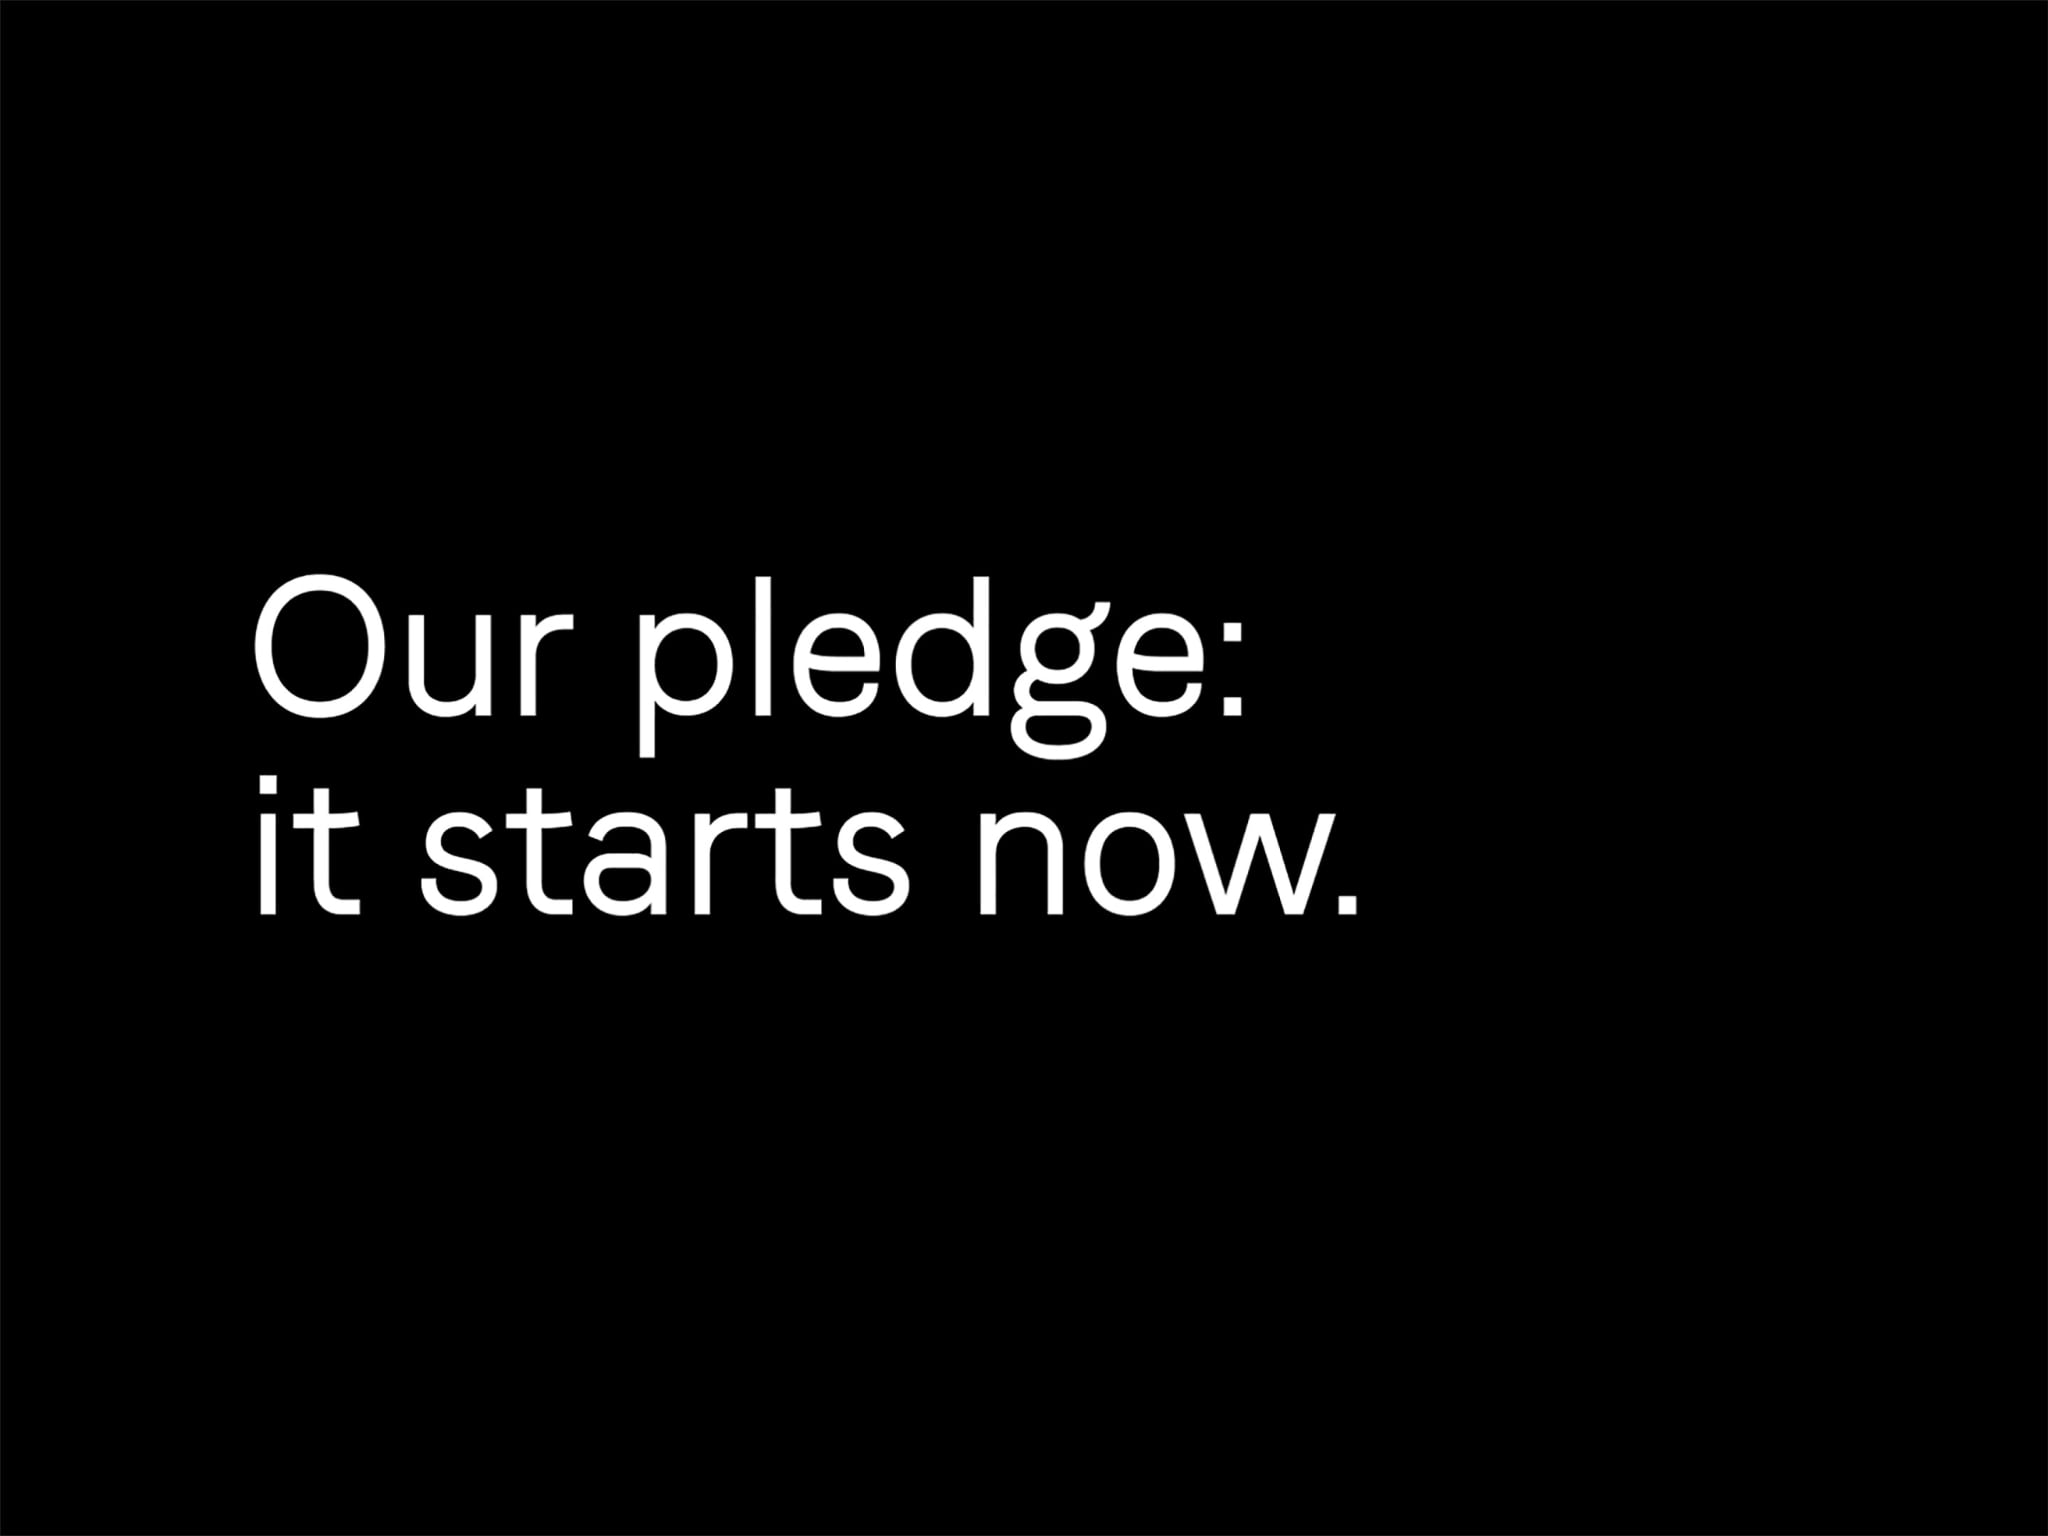 Our Pledge: It Starts Now, written in white type on a black background.